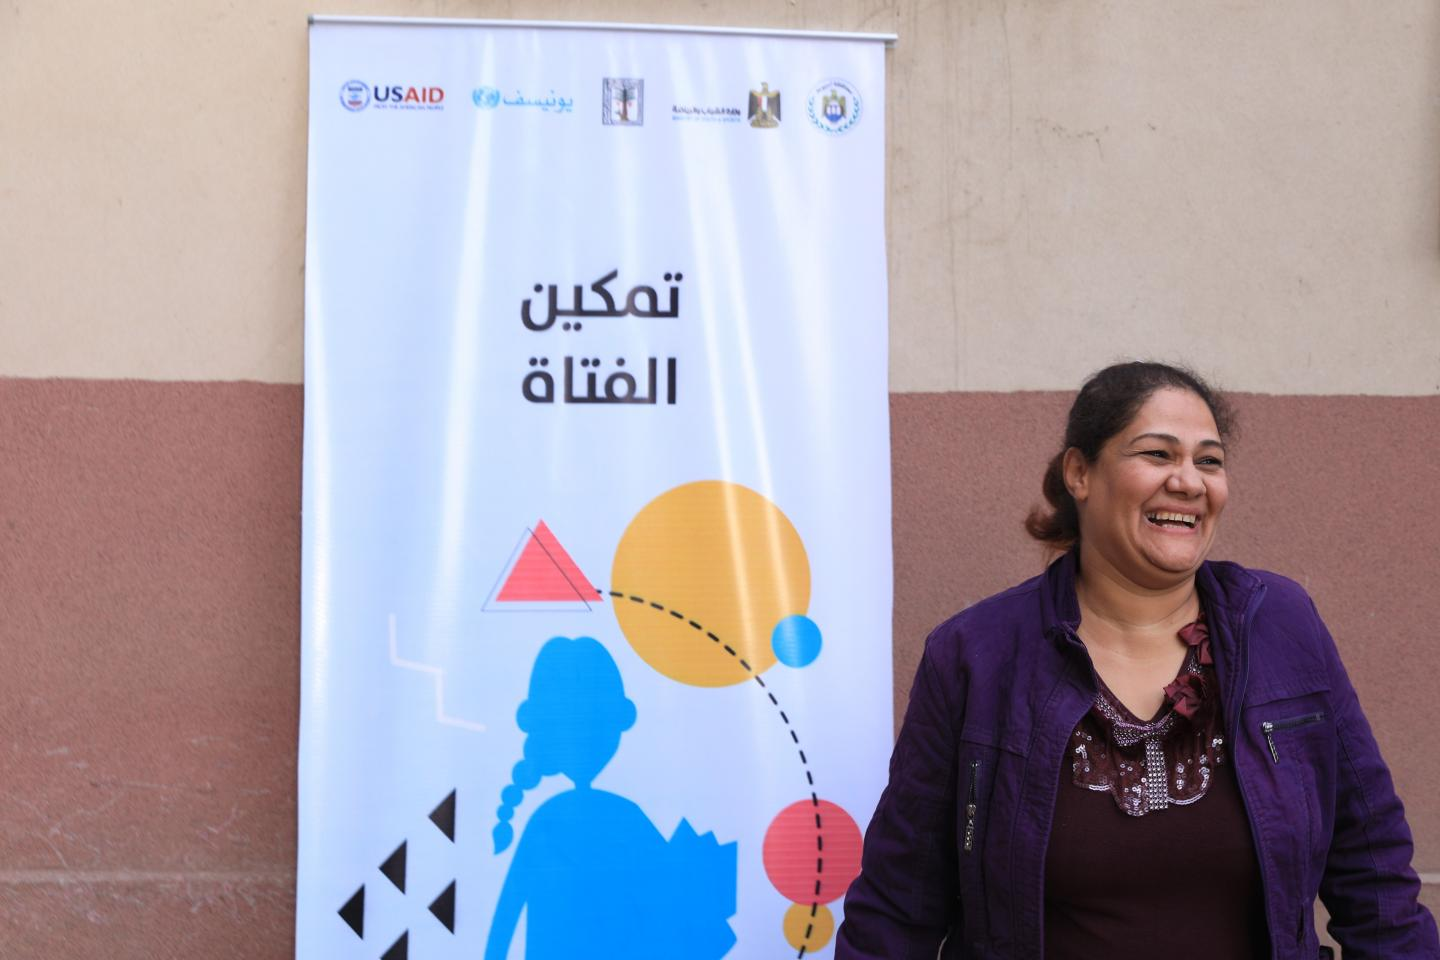 Women and girls from Asyut are stopping the practice by raising their voice